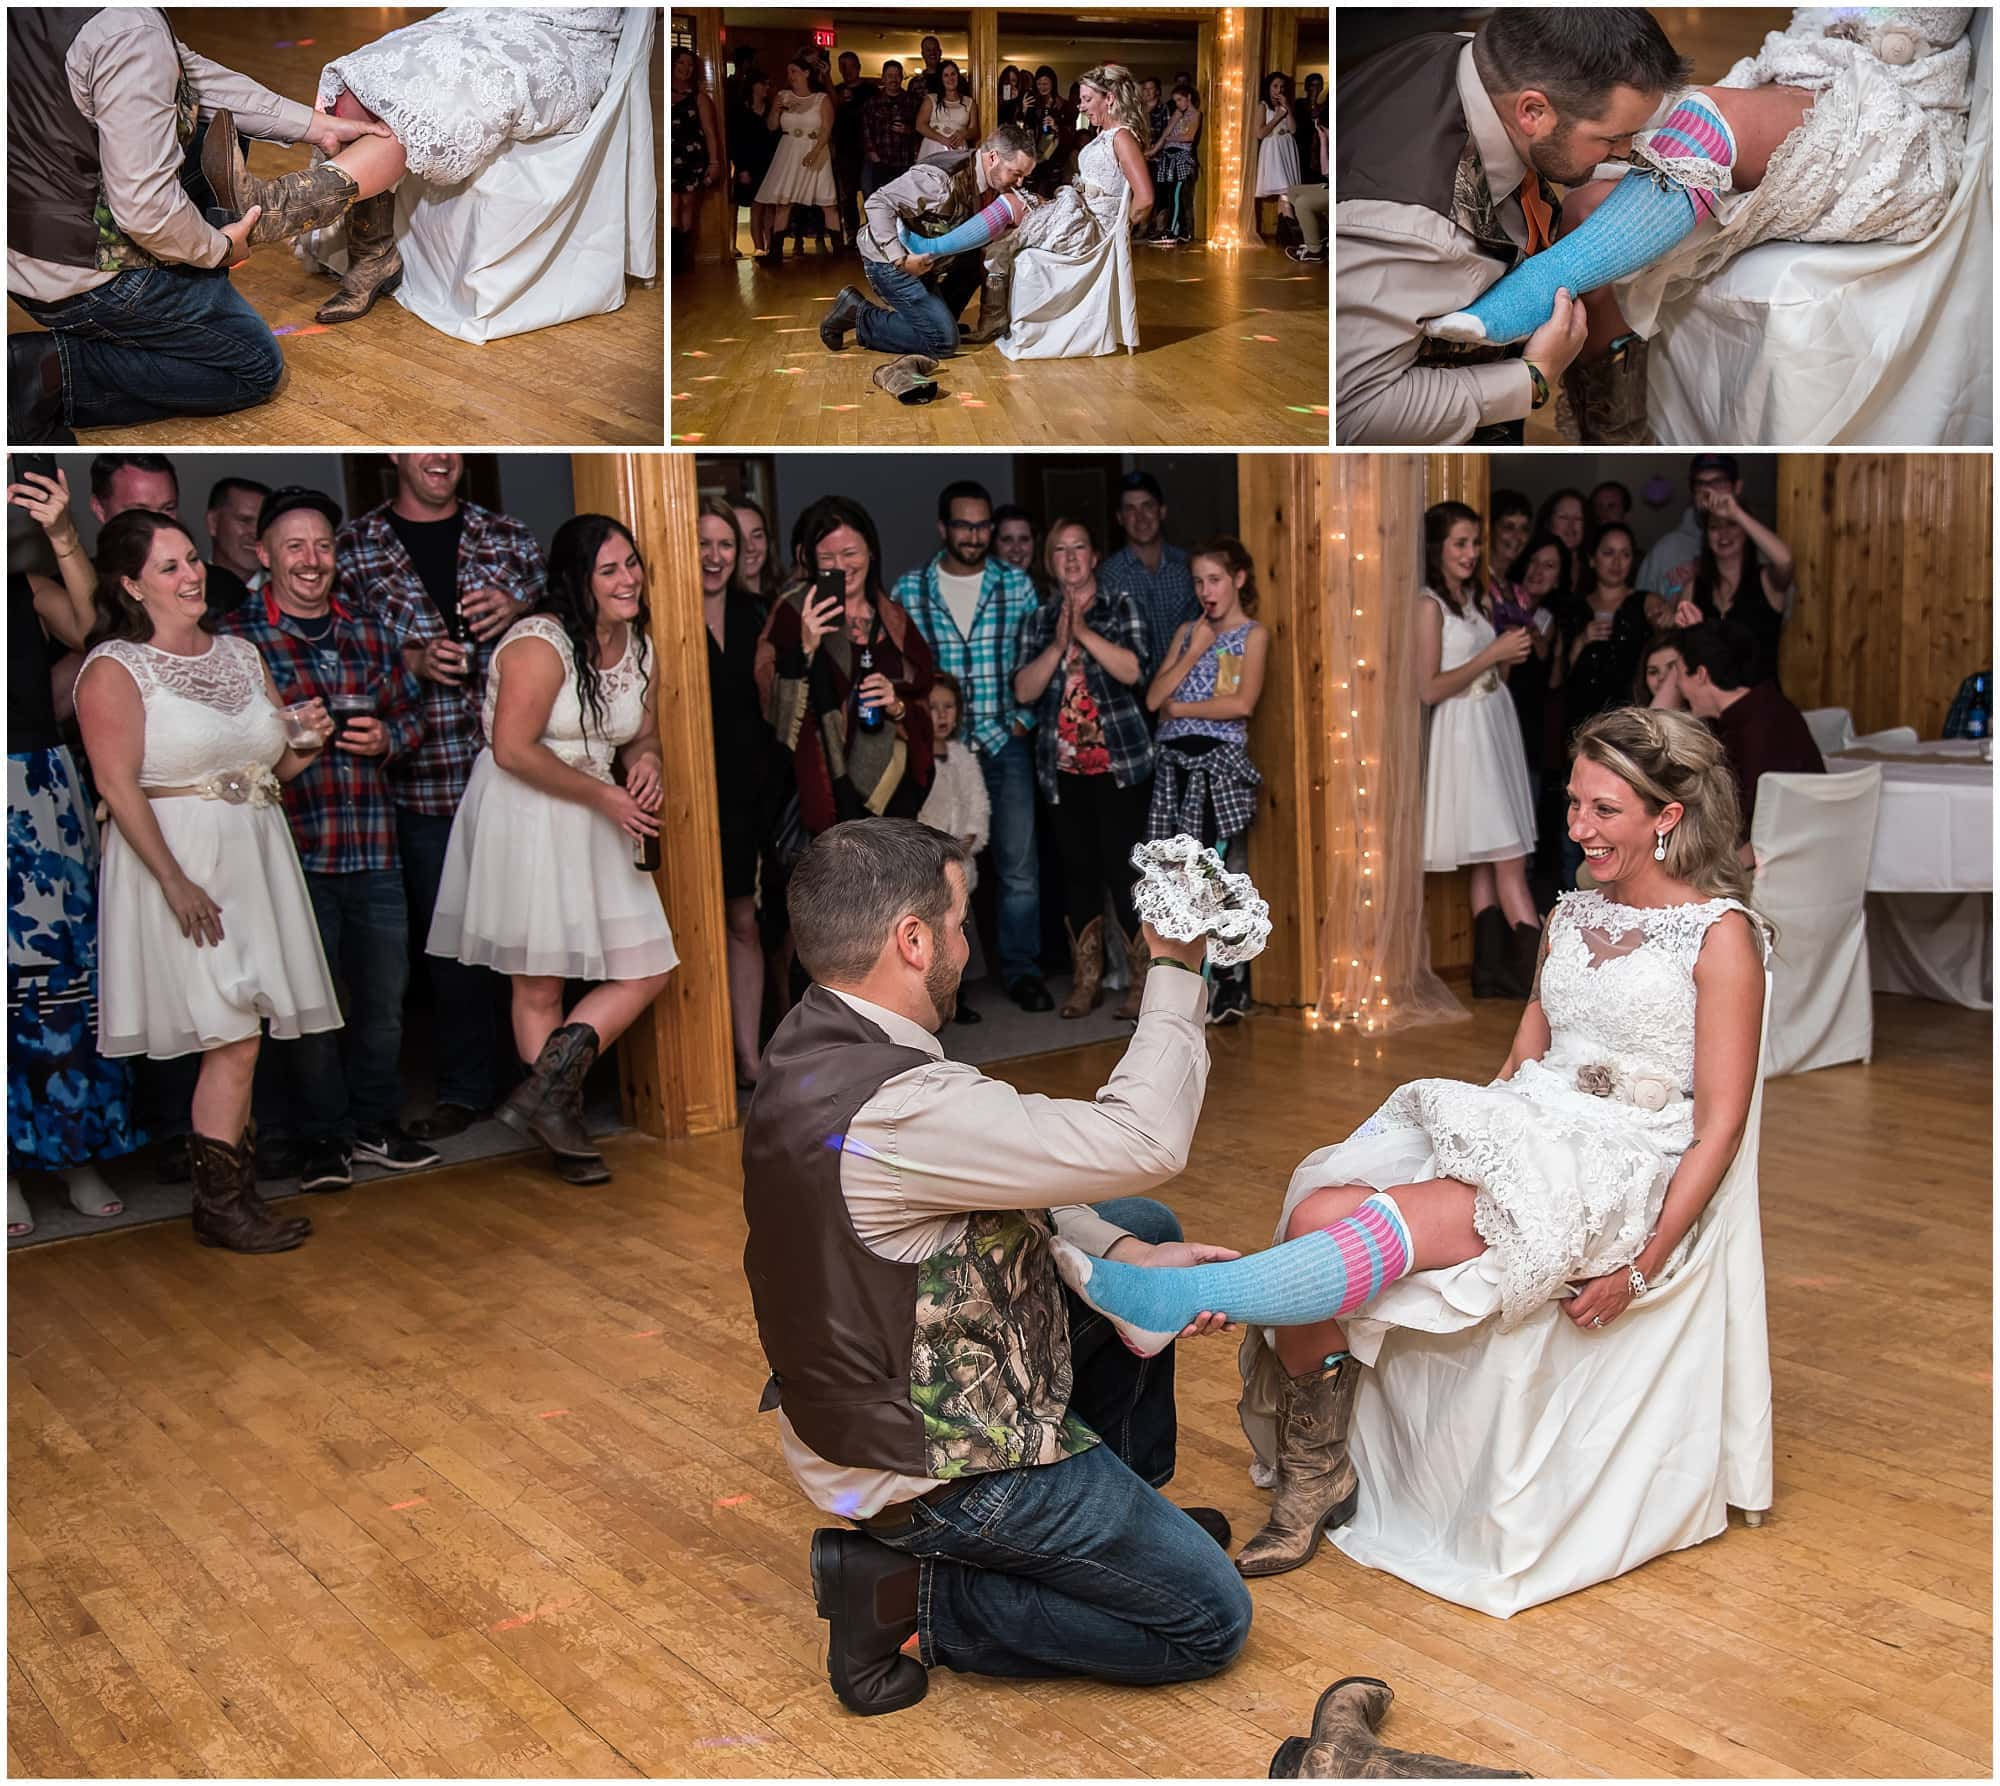 The groom takes of the bride's cowboy boots then grabs the garter off her leg during the garter toss.